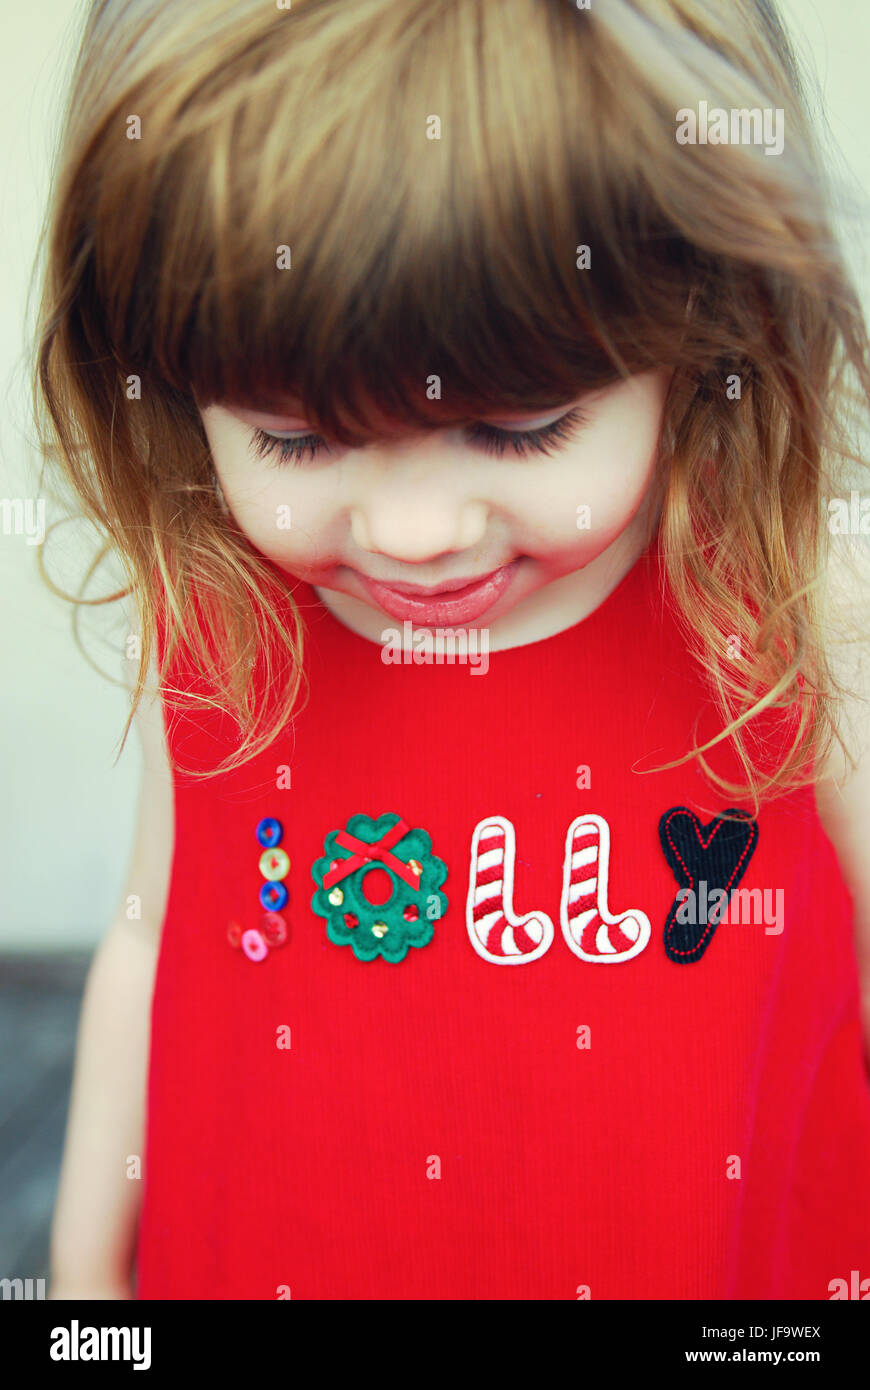 Happy toddler wearing jolly christmas dress - Stock Image